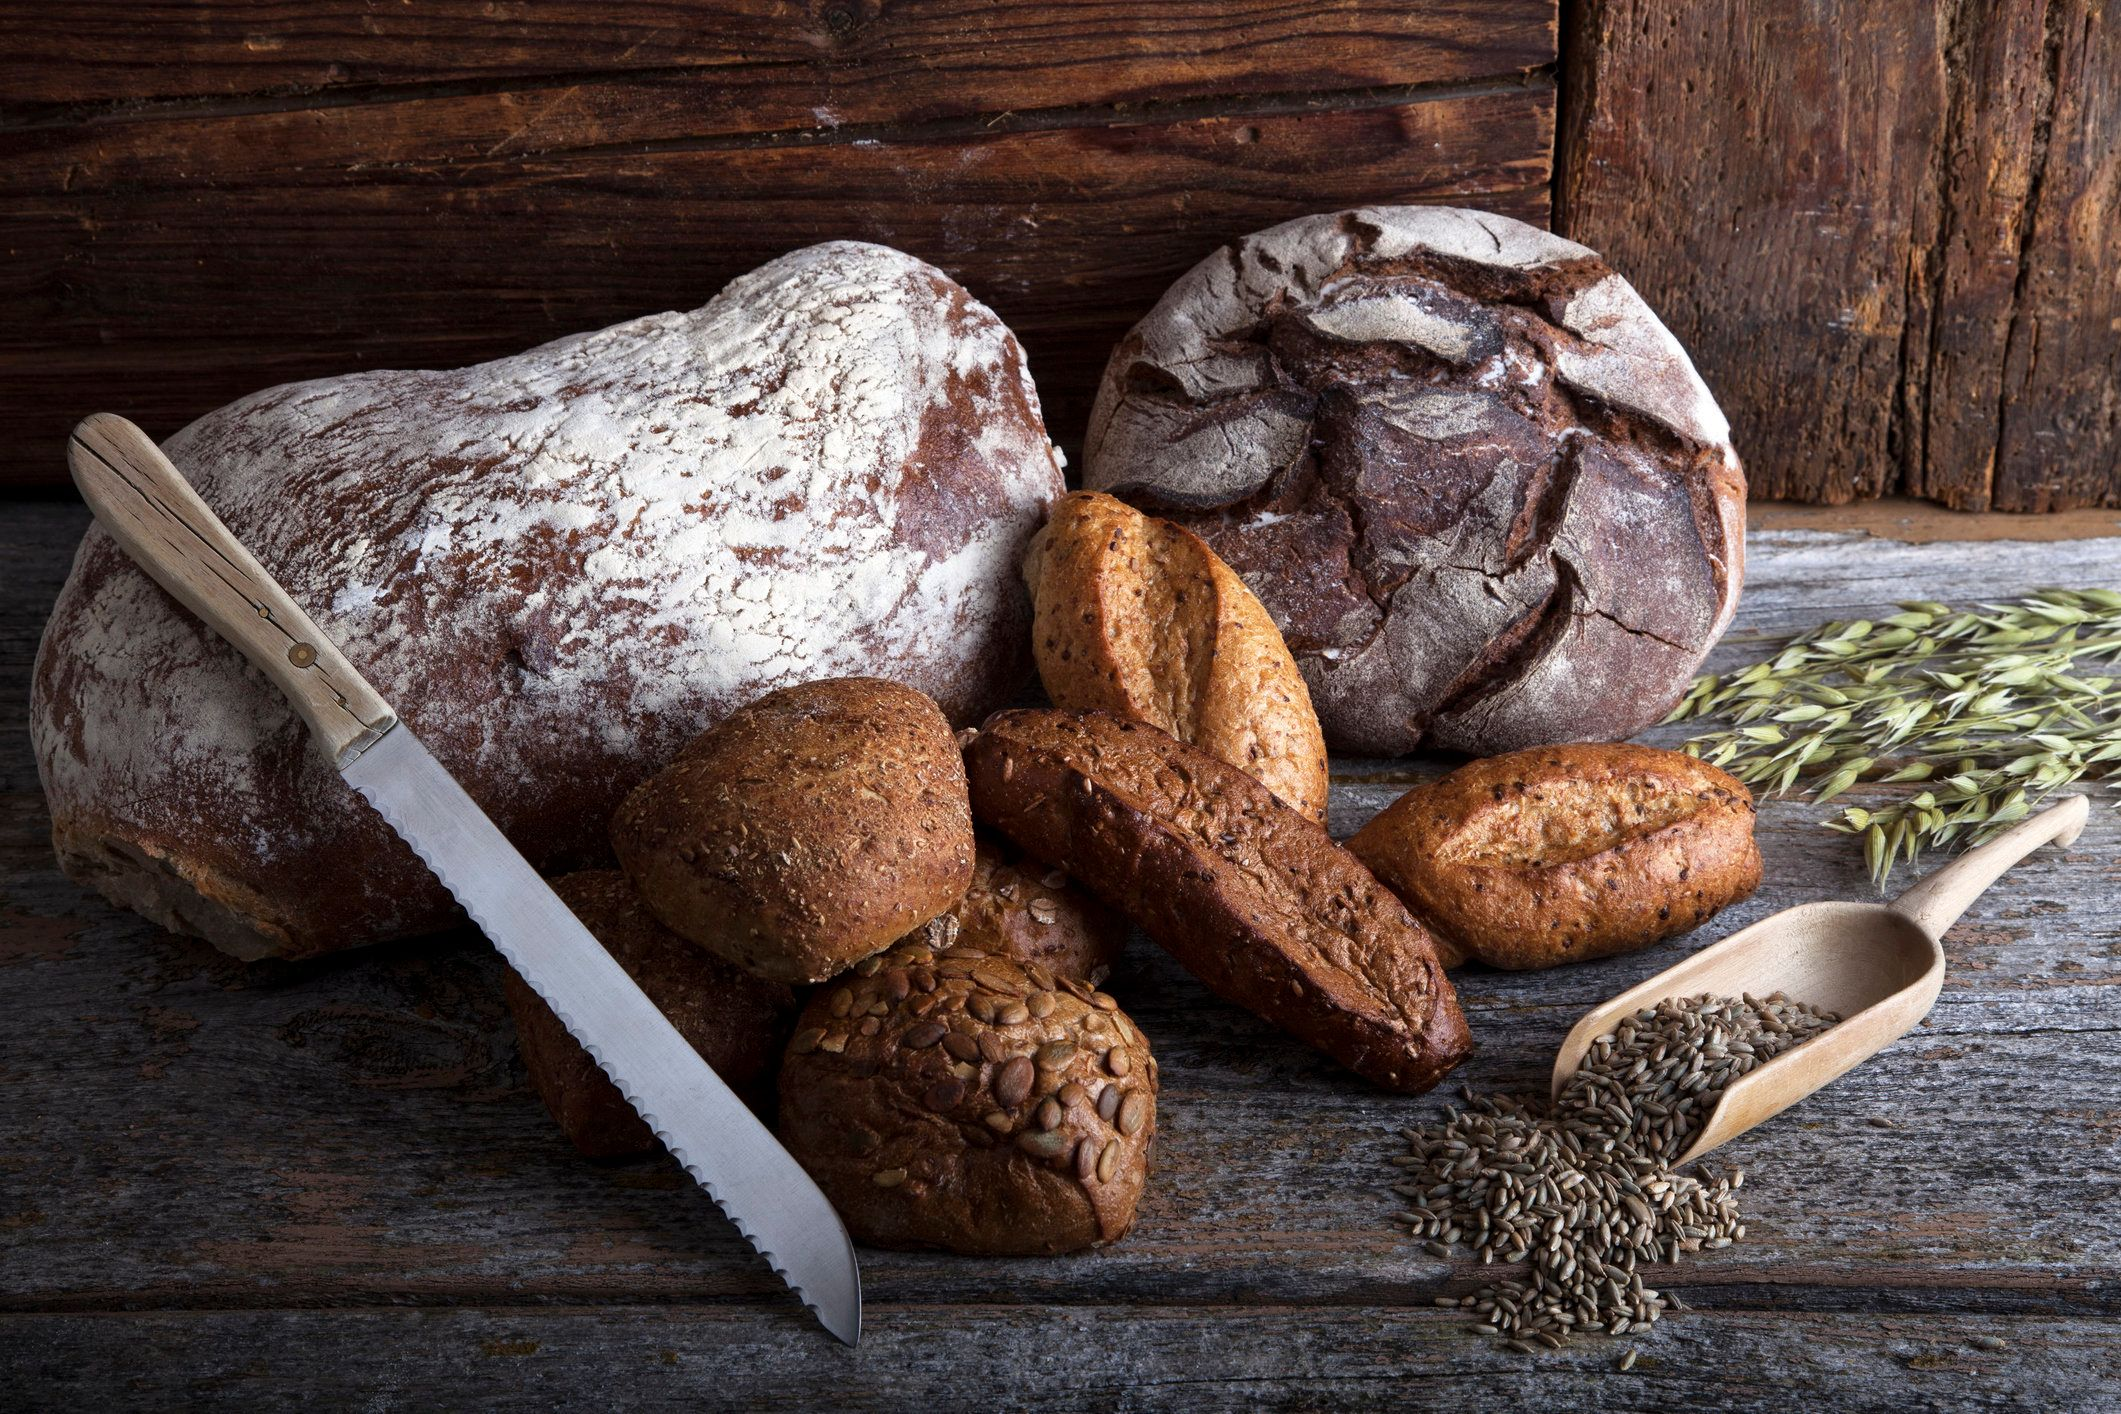 Bread loaves, rolls and a bread knife, rye grain and ears of corn on a rustic wooden surface